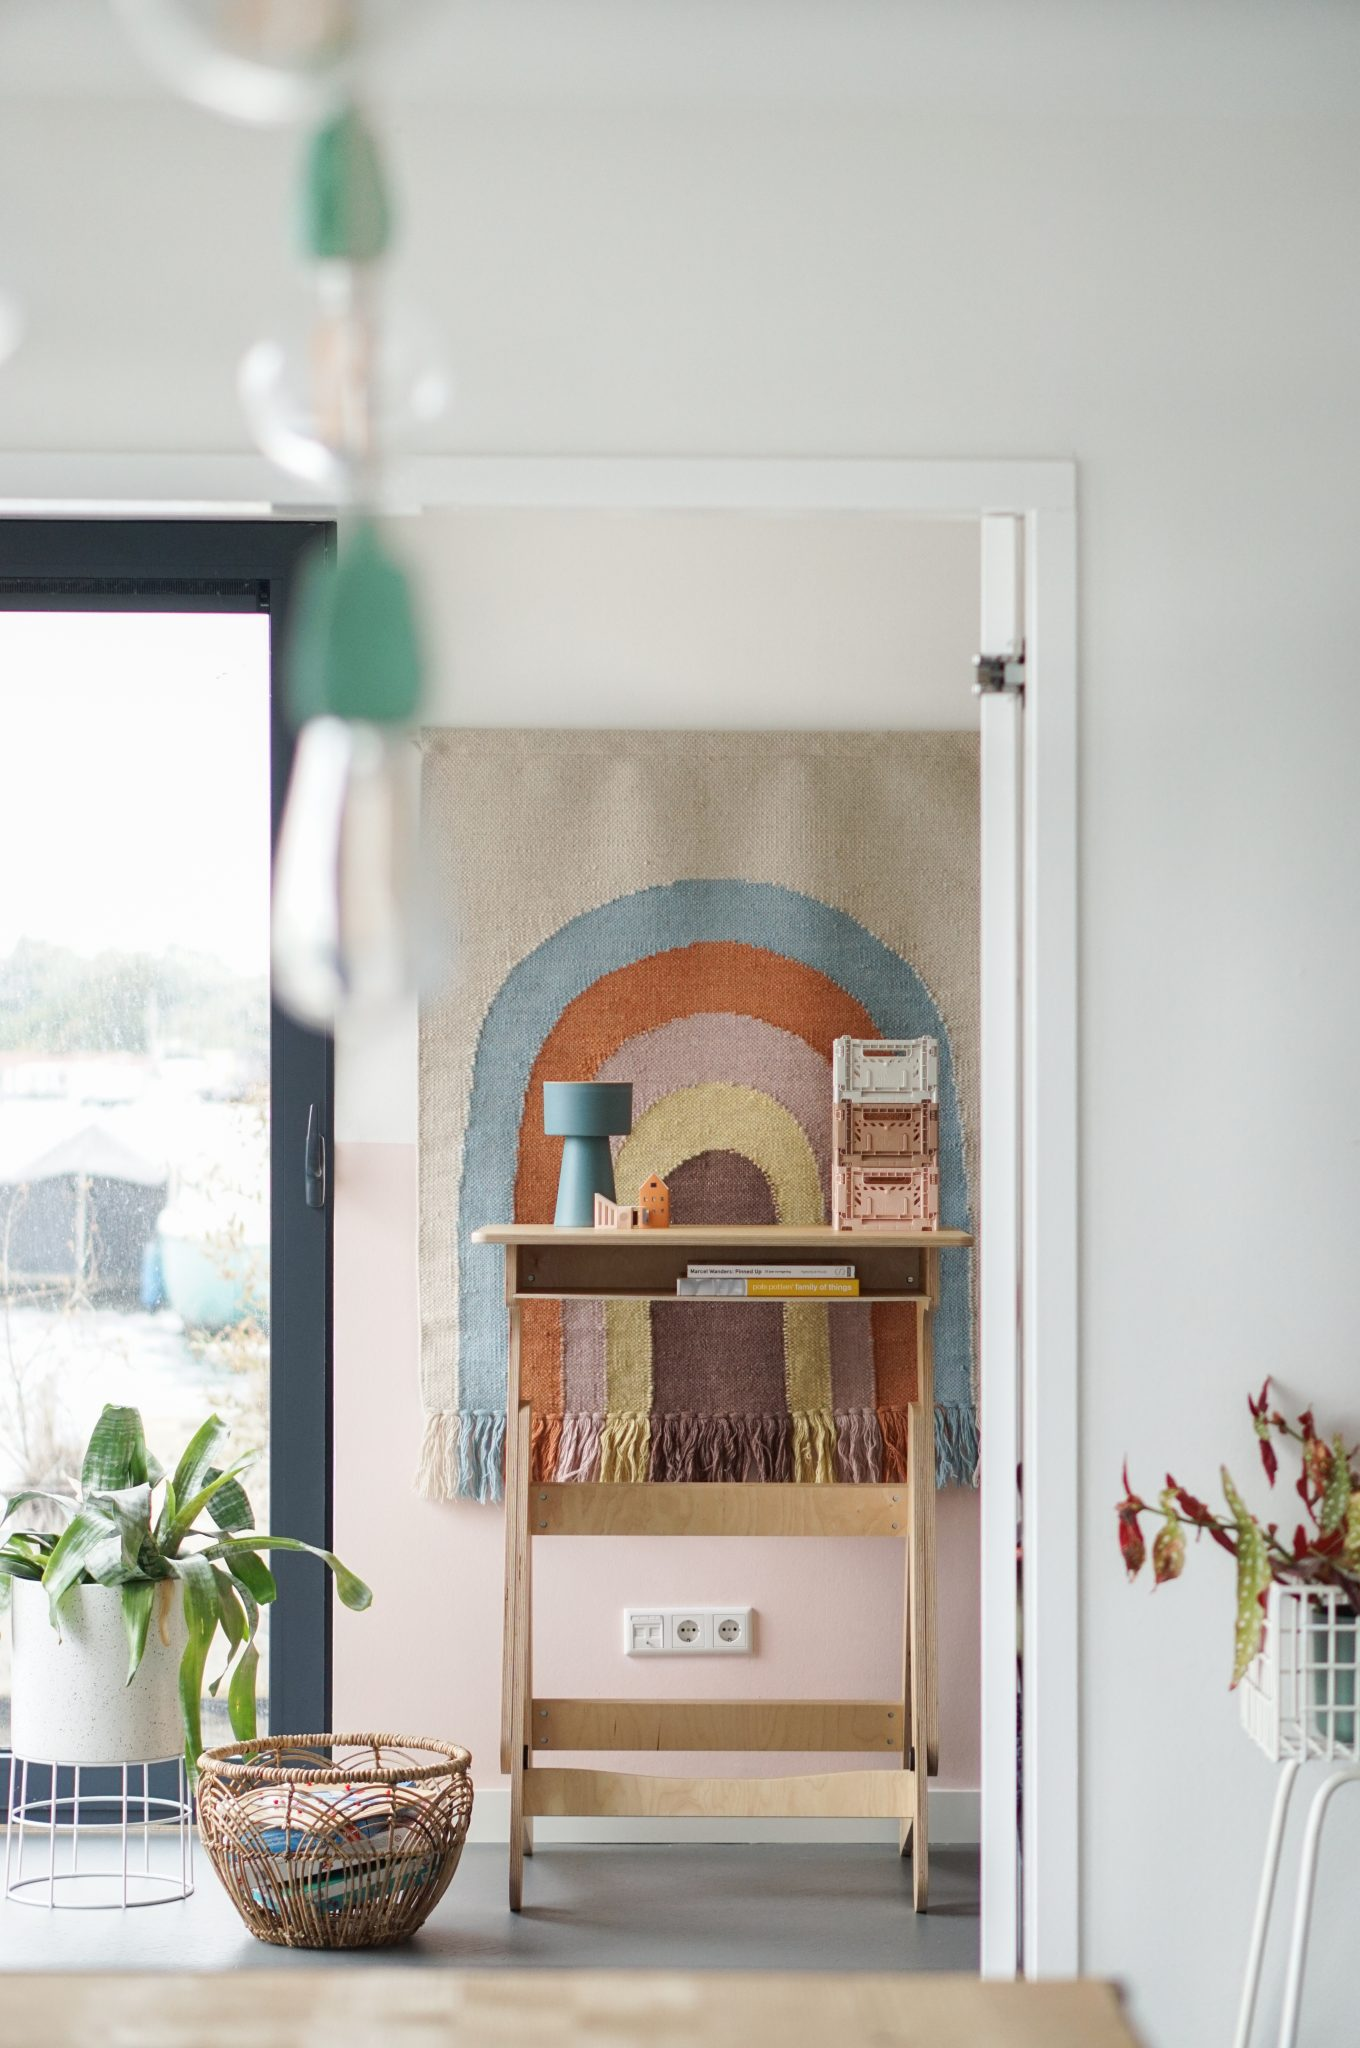 Metamorfose: naar een Scandi-Boho interieur met Spiced Honey